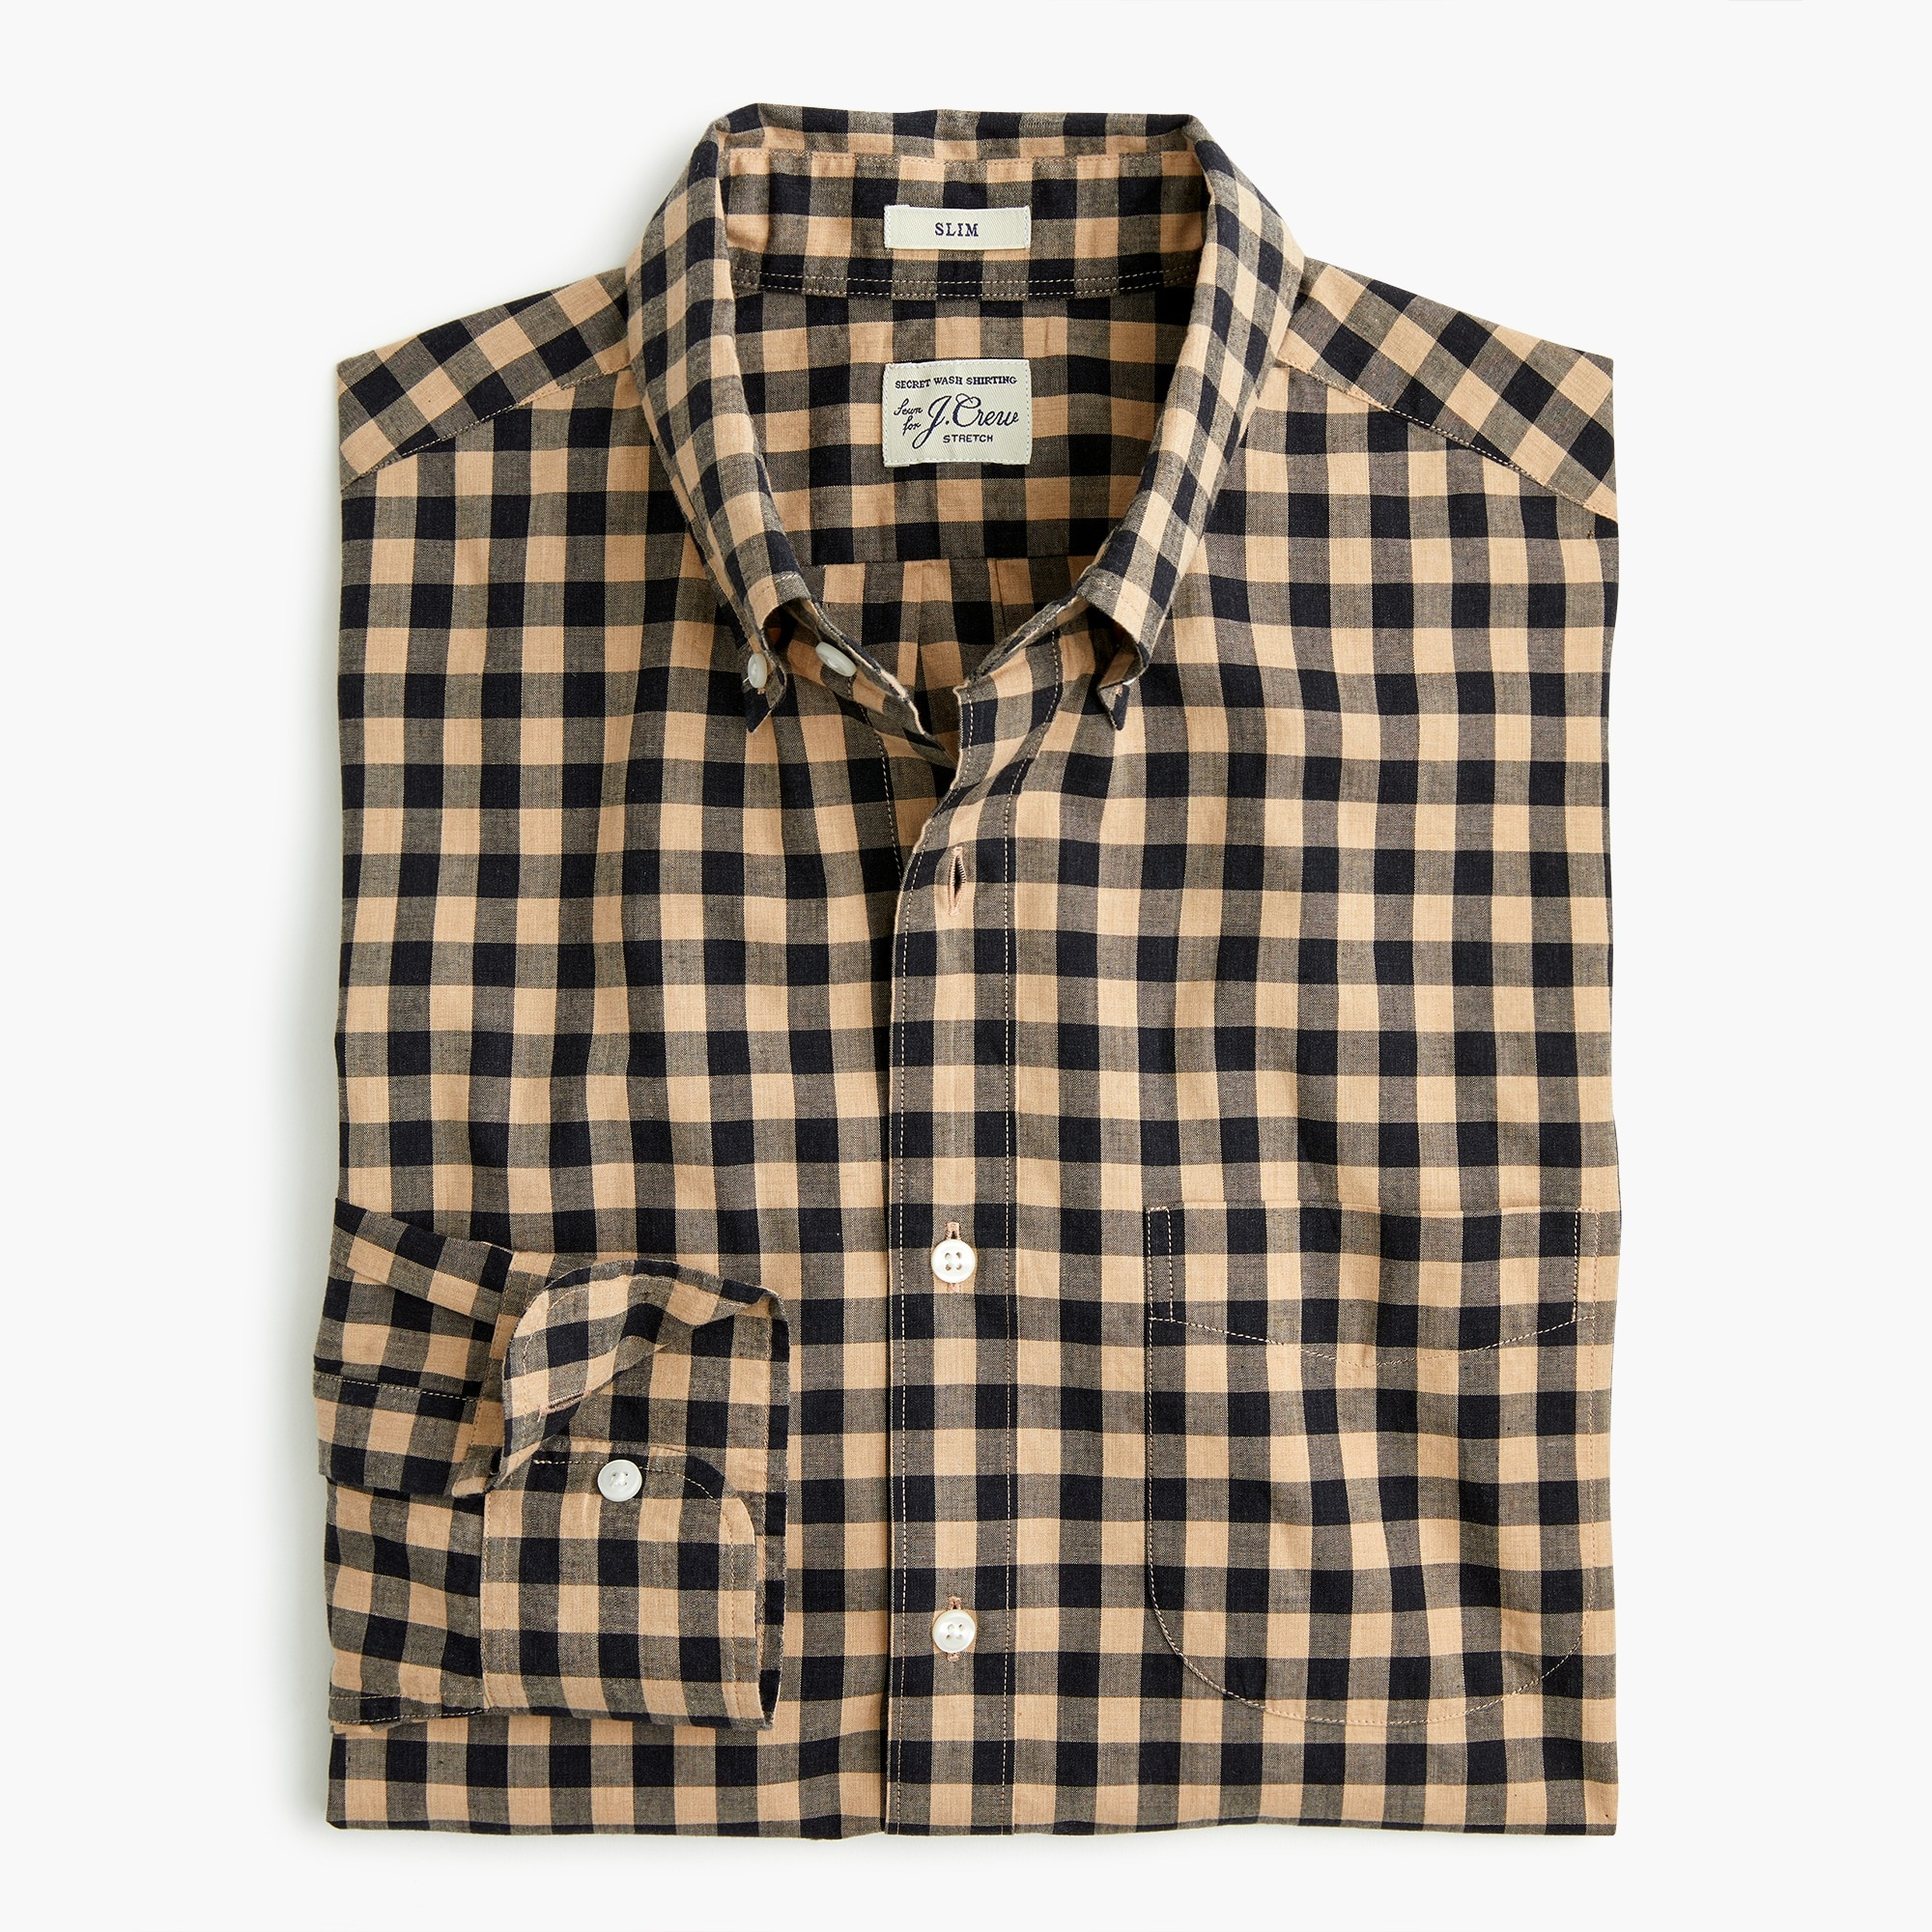 Image 1 for Untucked stretch Secret Wash shirt in heather poplin gingham